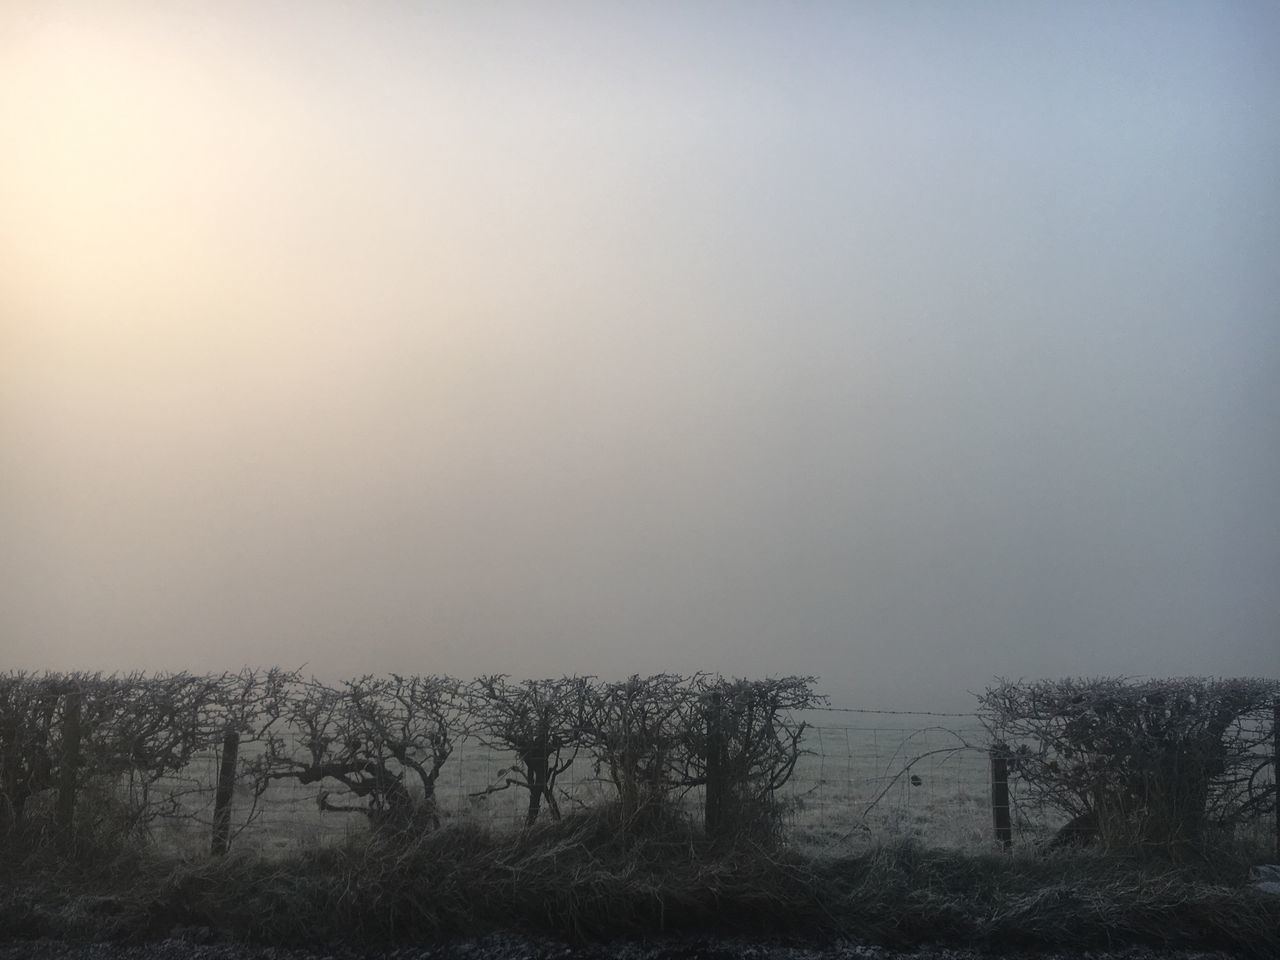 tranquility, landscape, nature, tranquil scene, beauty in nature, field, fog, scenics, outdoors, no people, tree, mist, day, hazy, winter, sky, grass, cold temperature